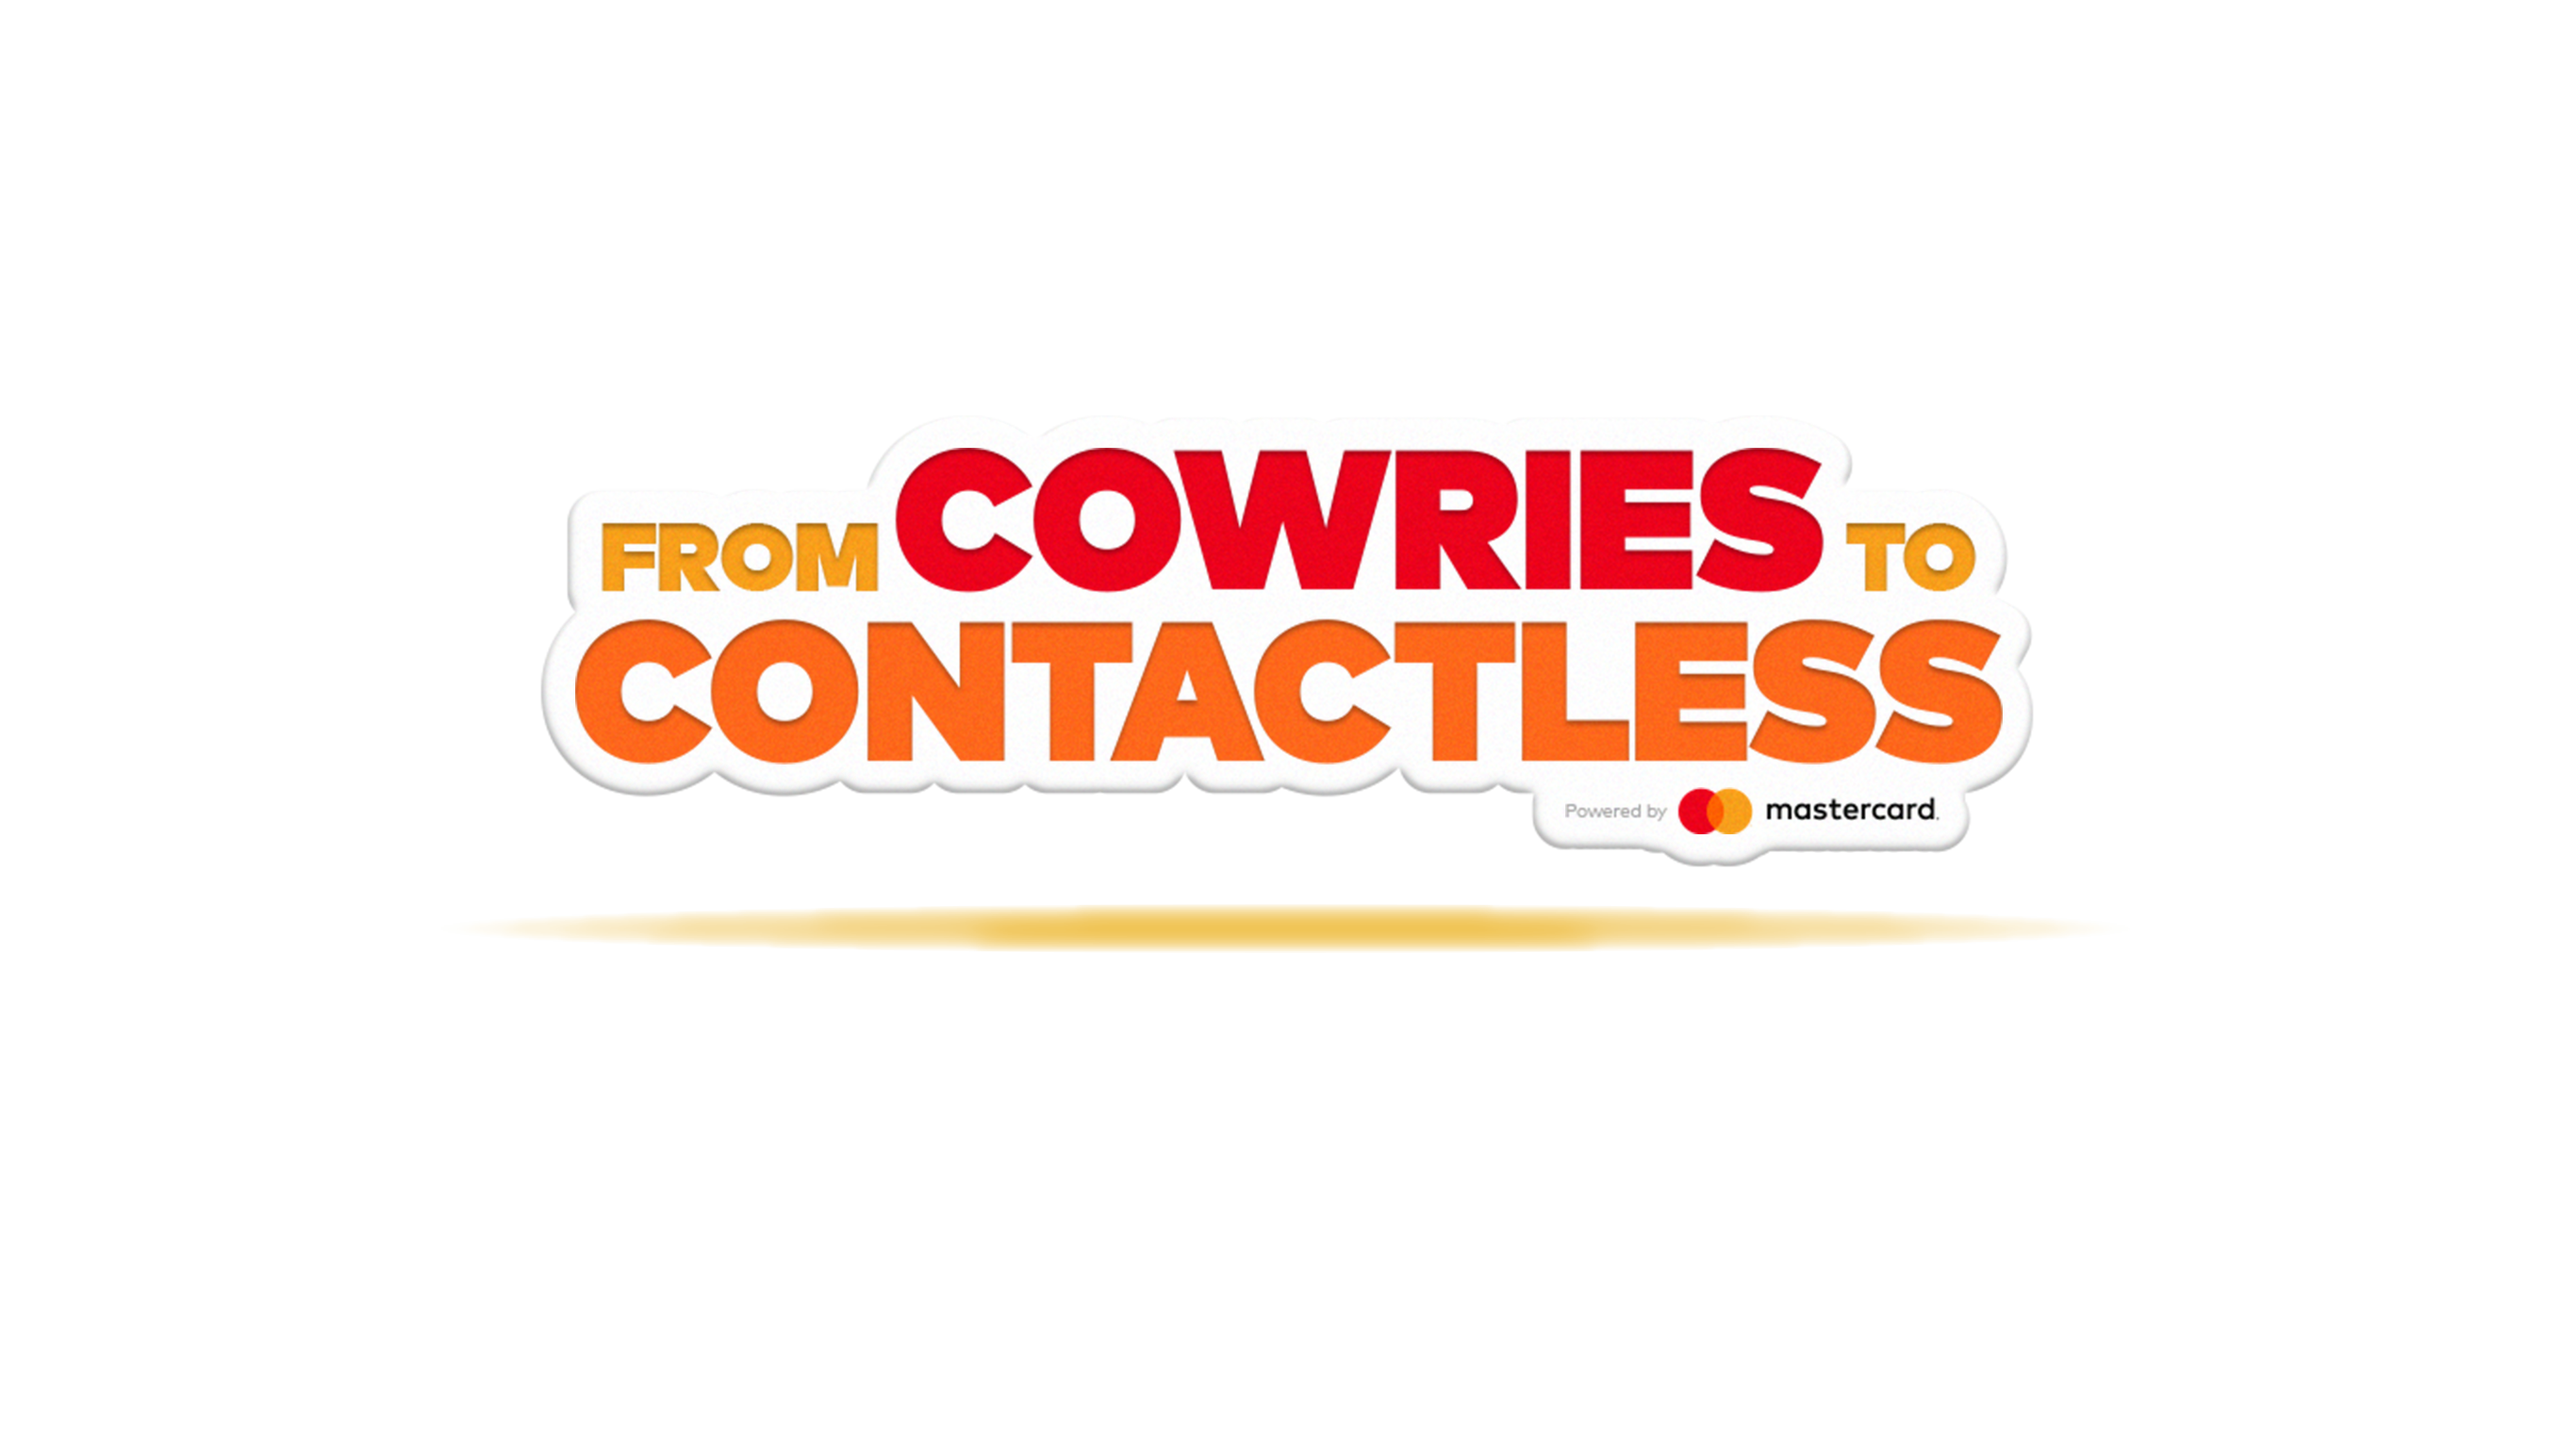 From Cowries to Contactless